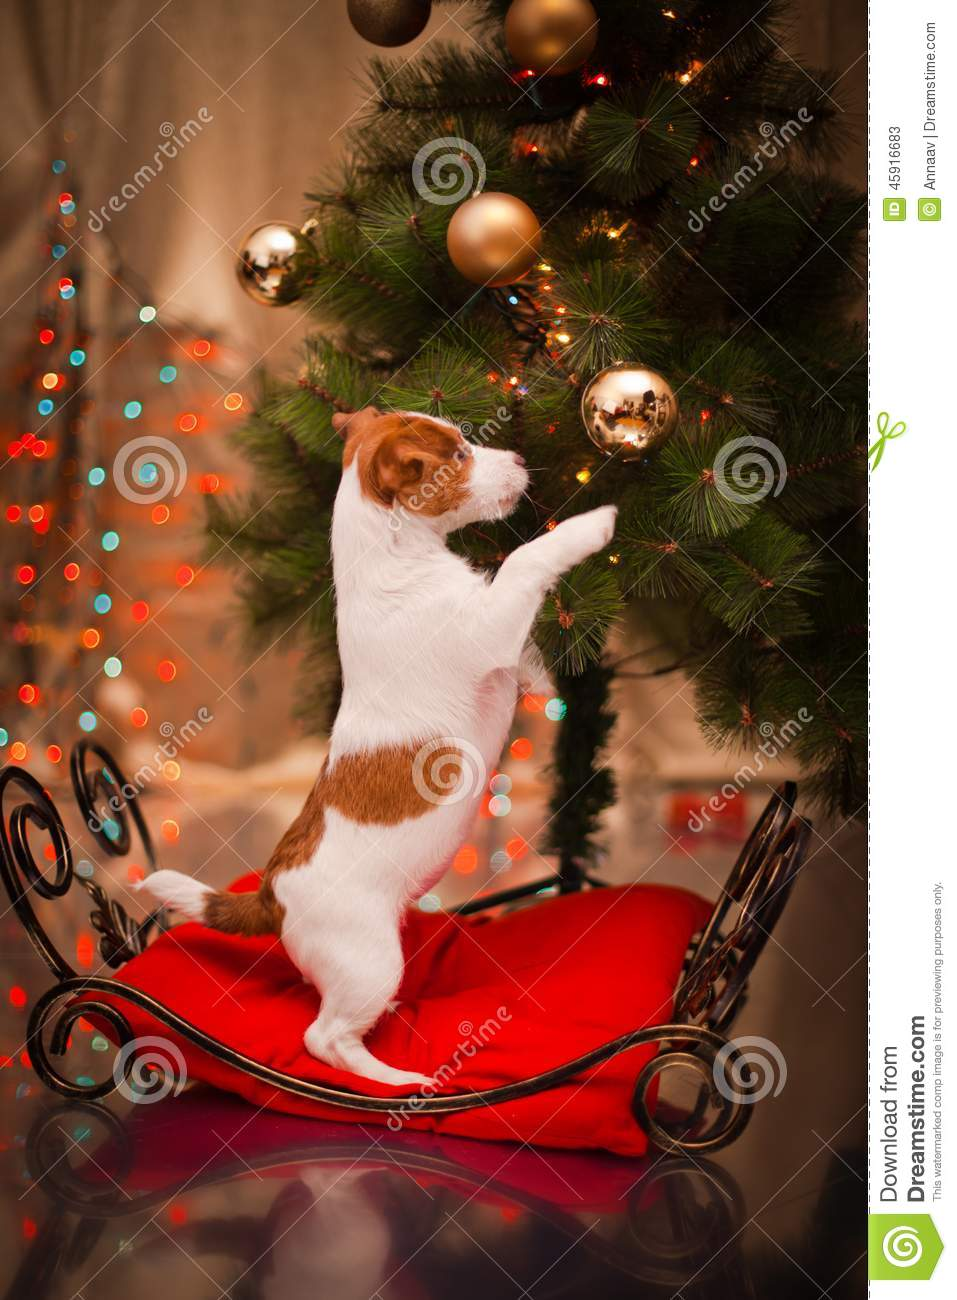 Xmas Cute Wallpaper Dog Jack Russell Terrier Puppy Christmas Stock Image